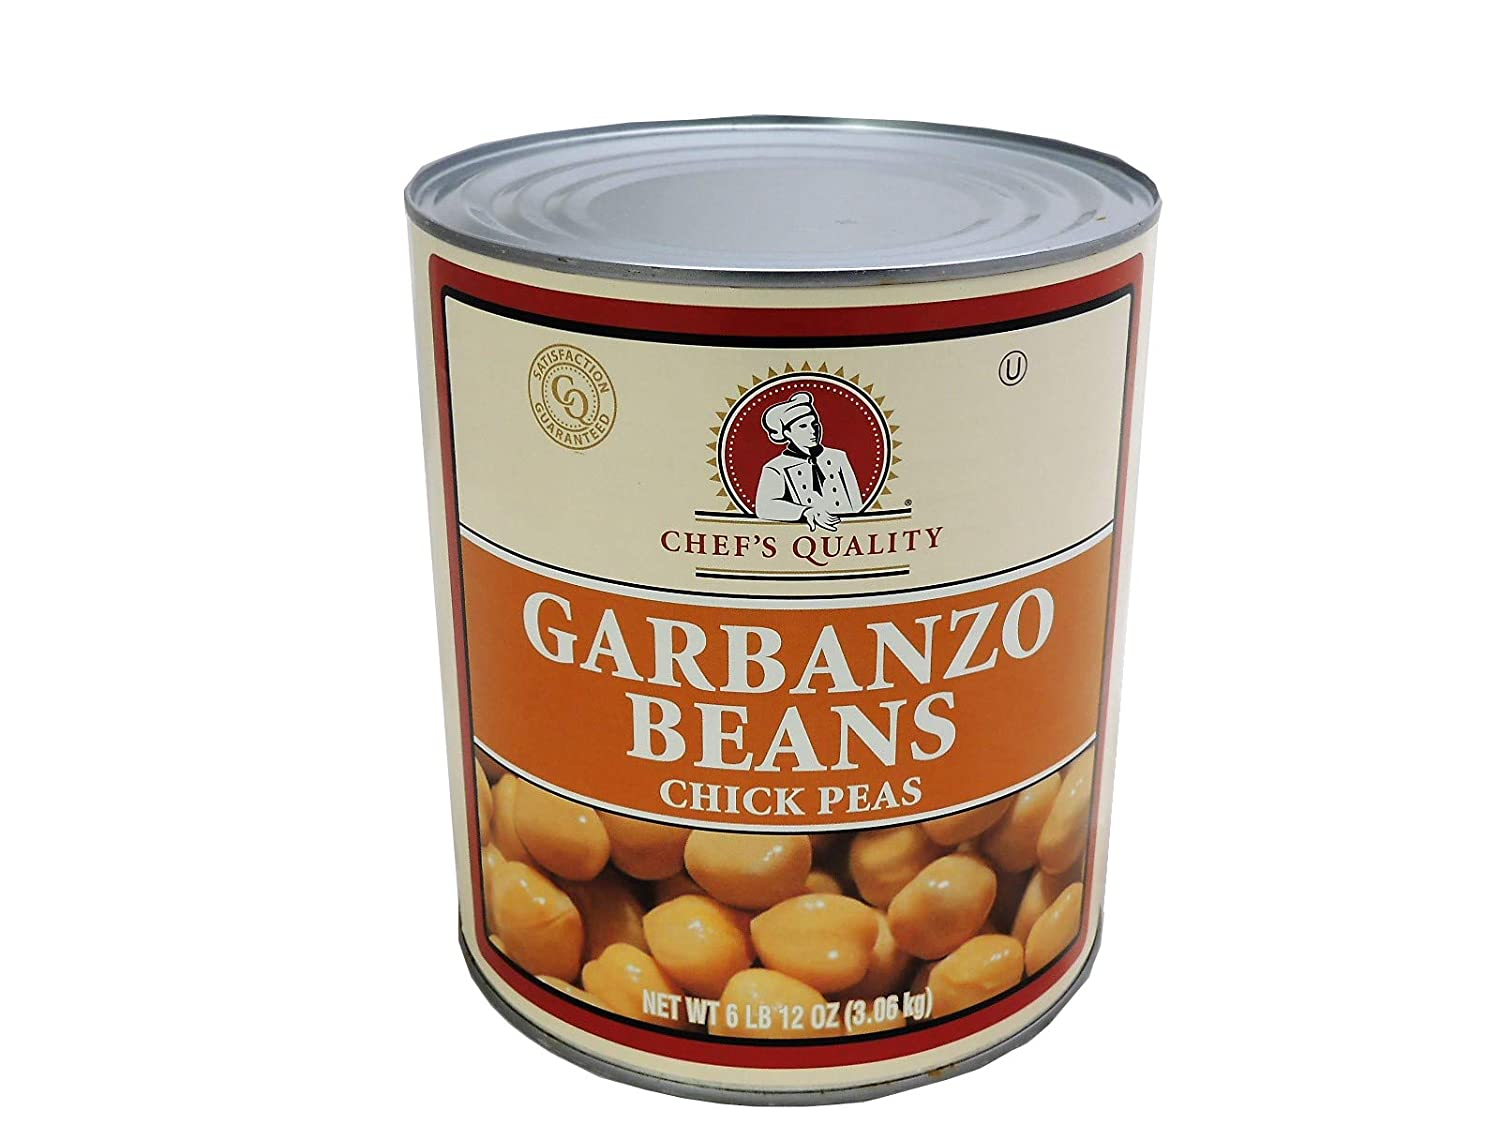 Garbanzo Beans, Chick Peas, Salad Beans Chefs Quality, Number #10 Can, 6Lbs 12OZ, Bulk